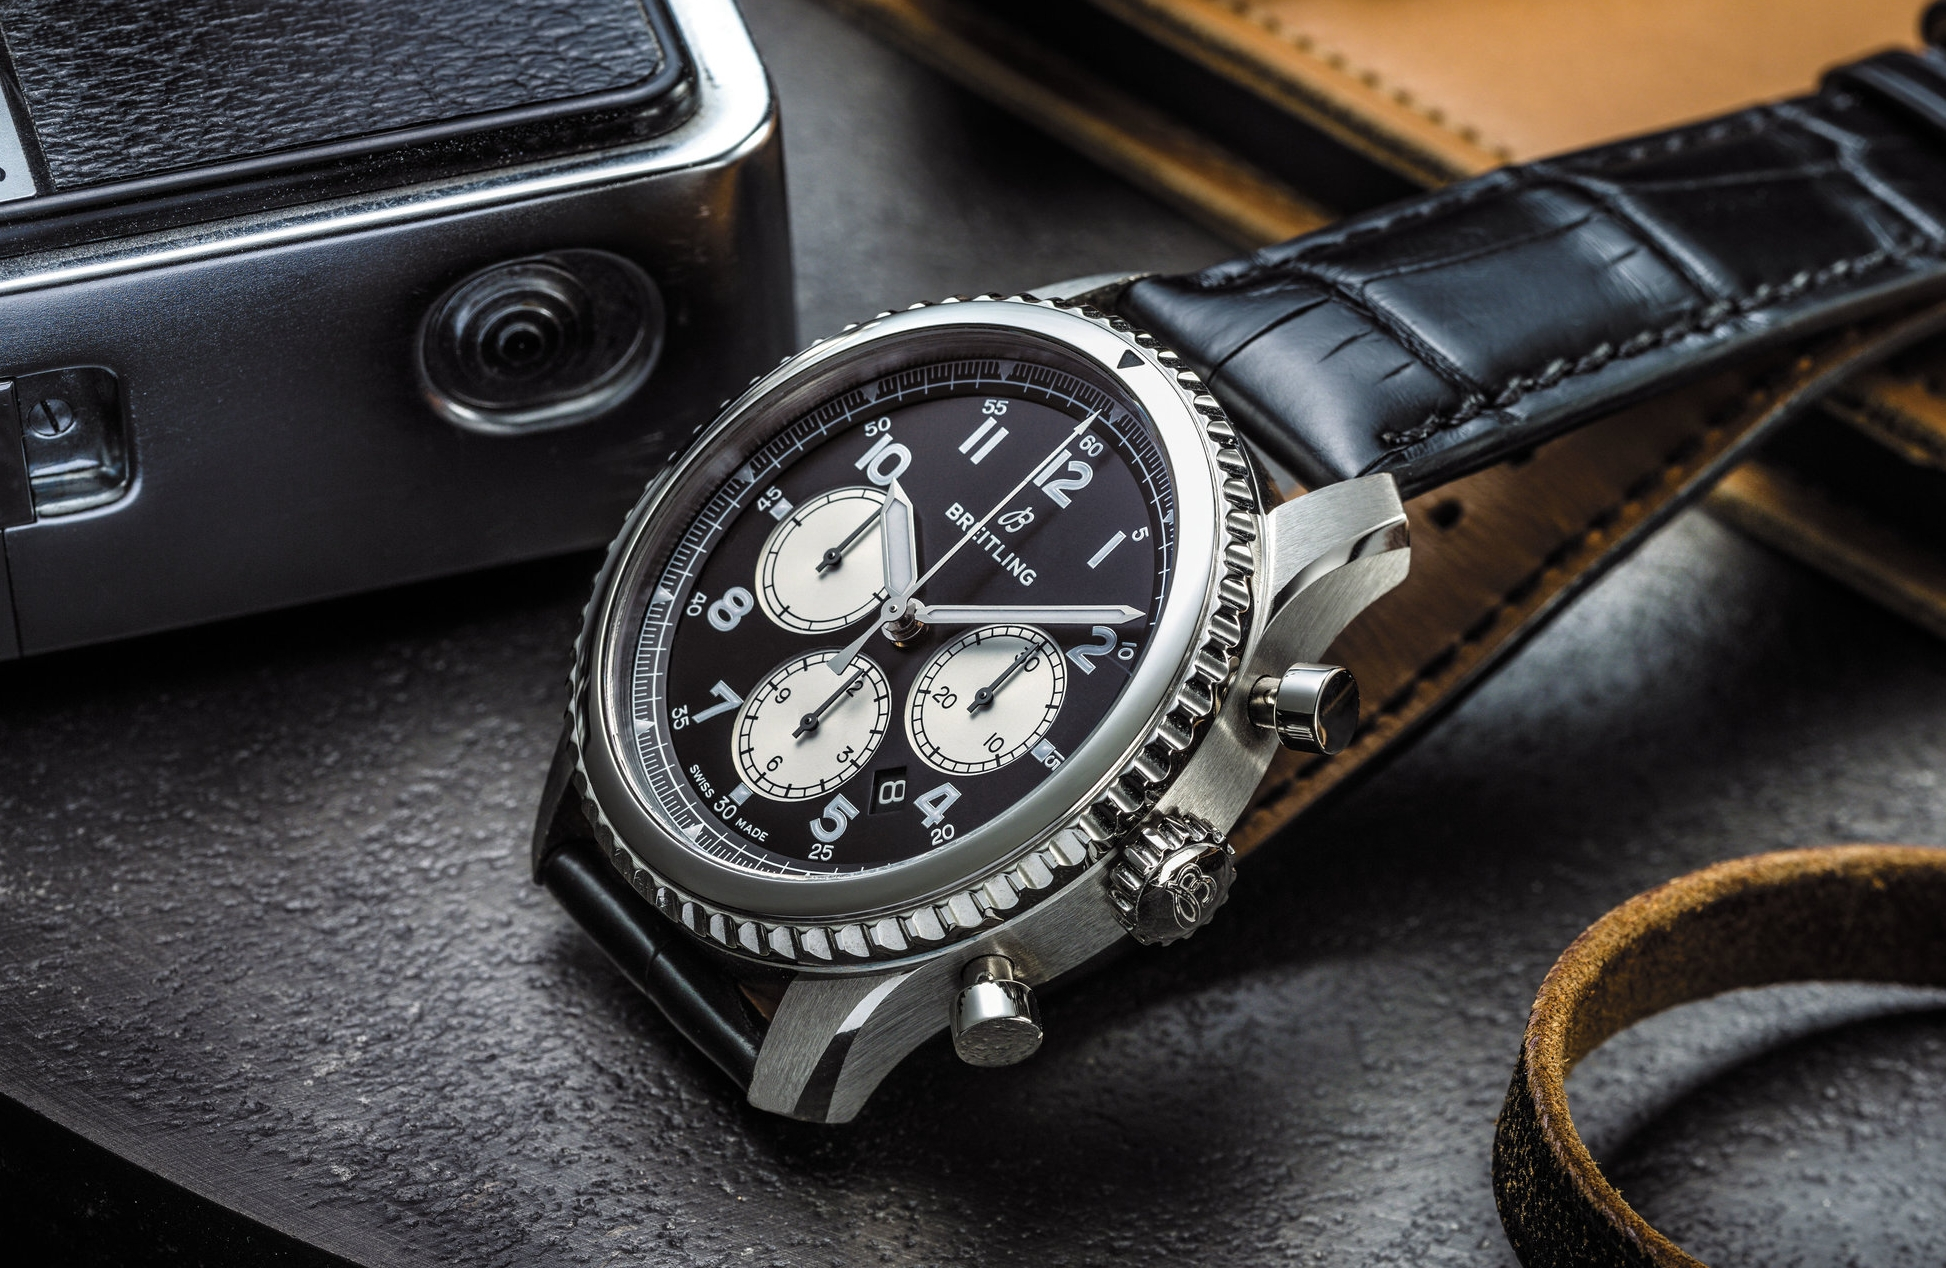 Navitimer 8 B01 Chronograph with black dial and black alligator strap_02.jpg